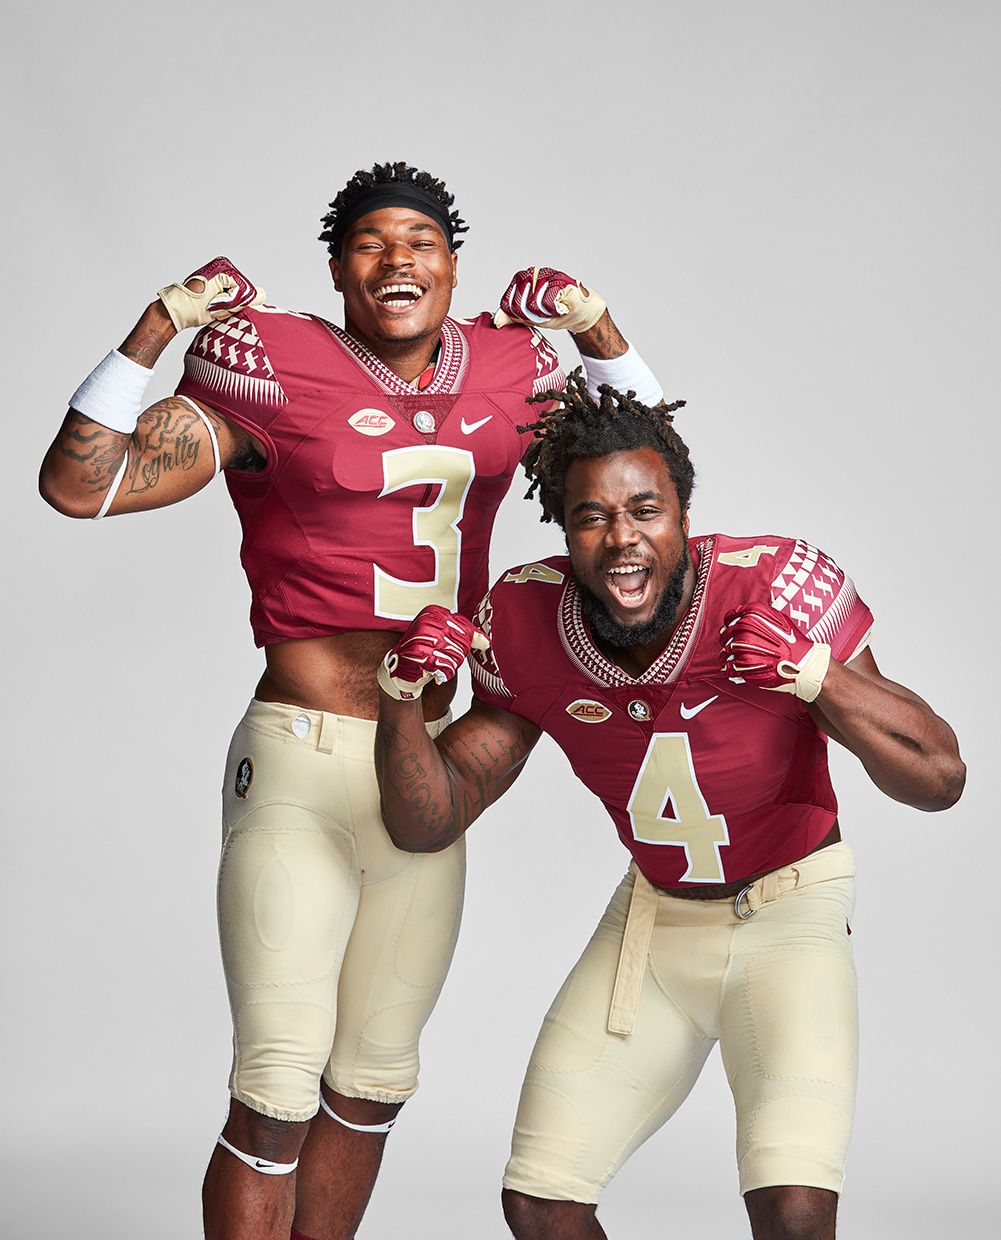 ESPN_FSU_3JAMES_4COOK_0276